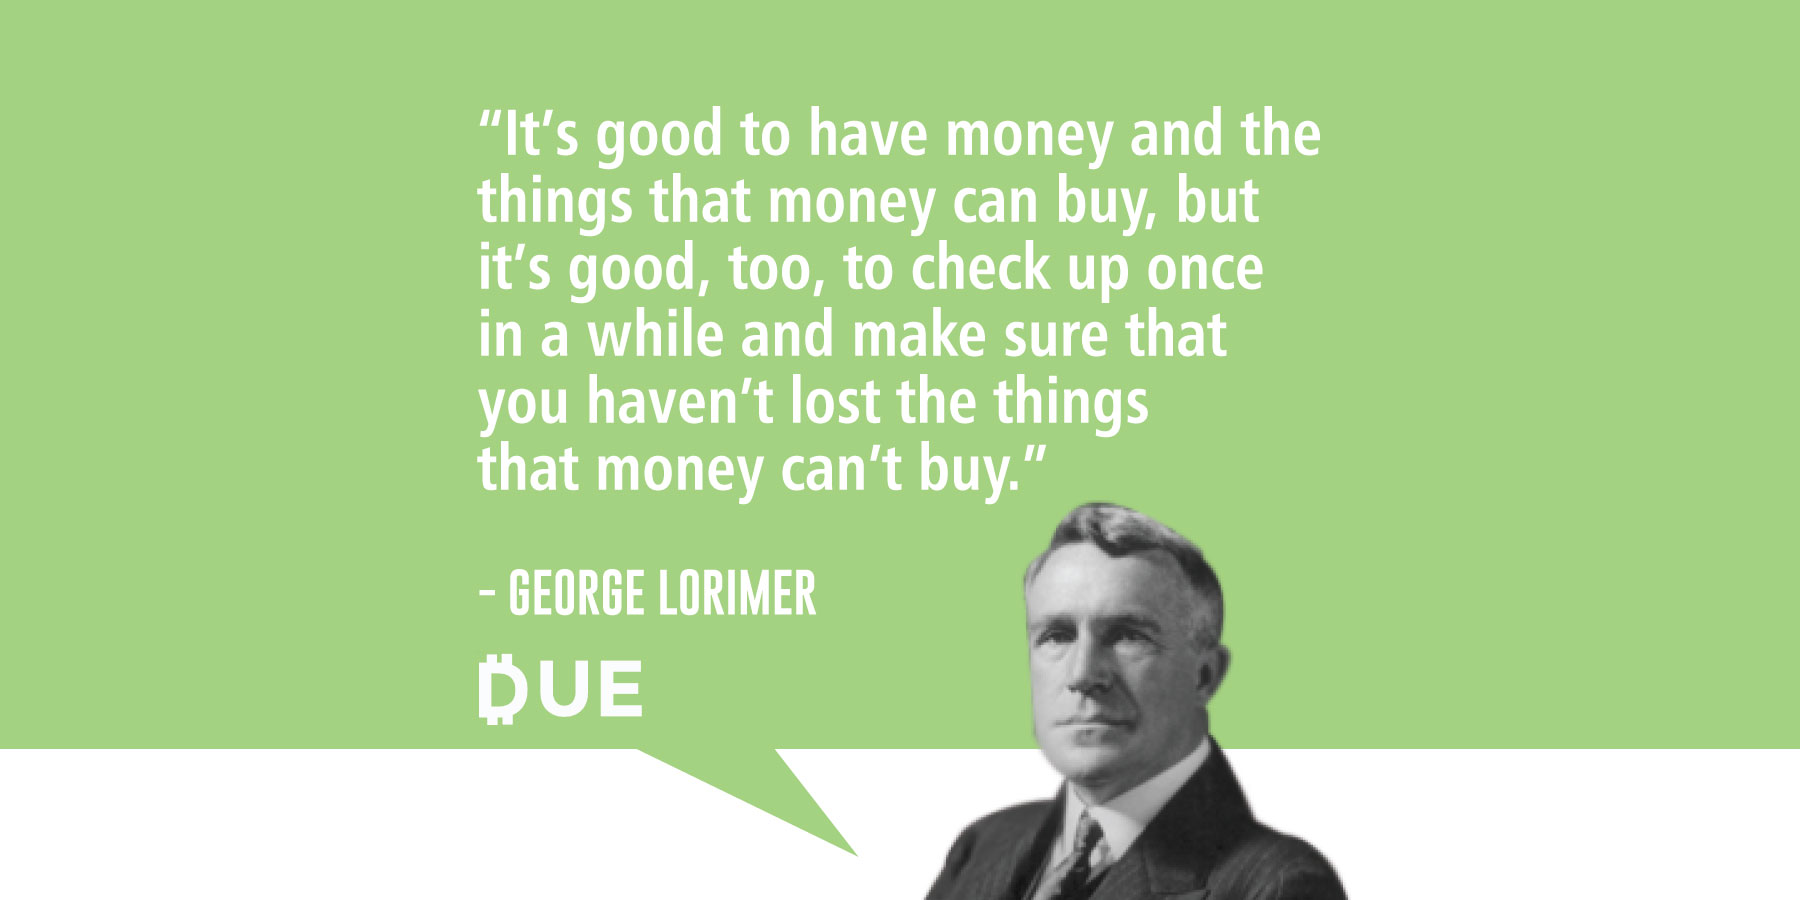 Make Sure That You Haven't Lost the Things that Money Can't Buy - George Lorimer